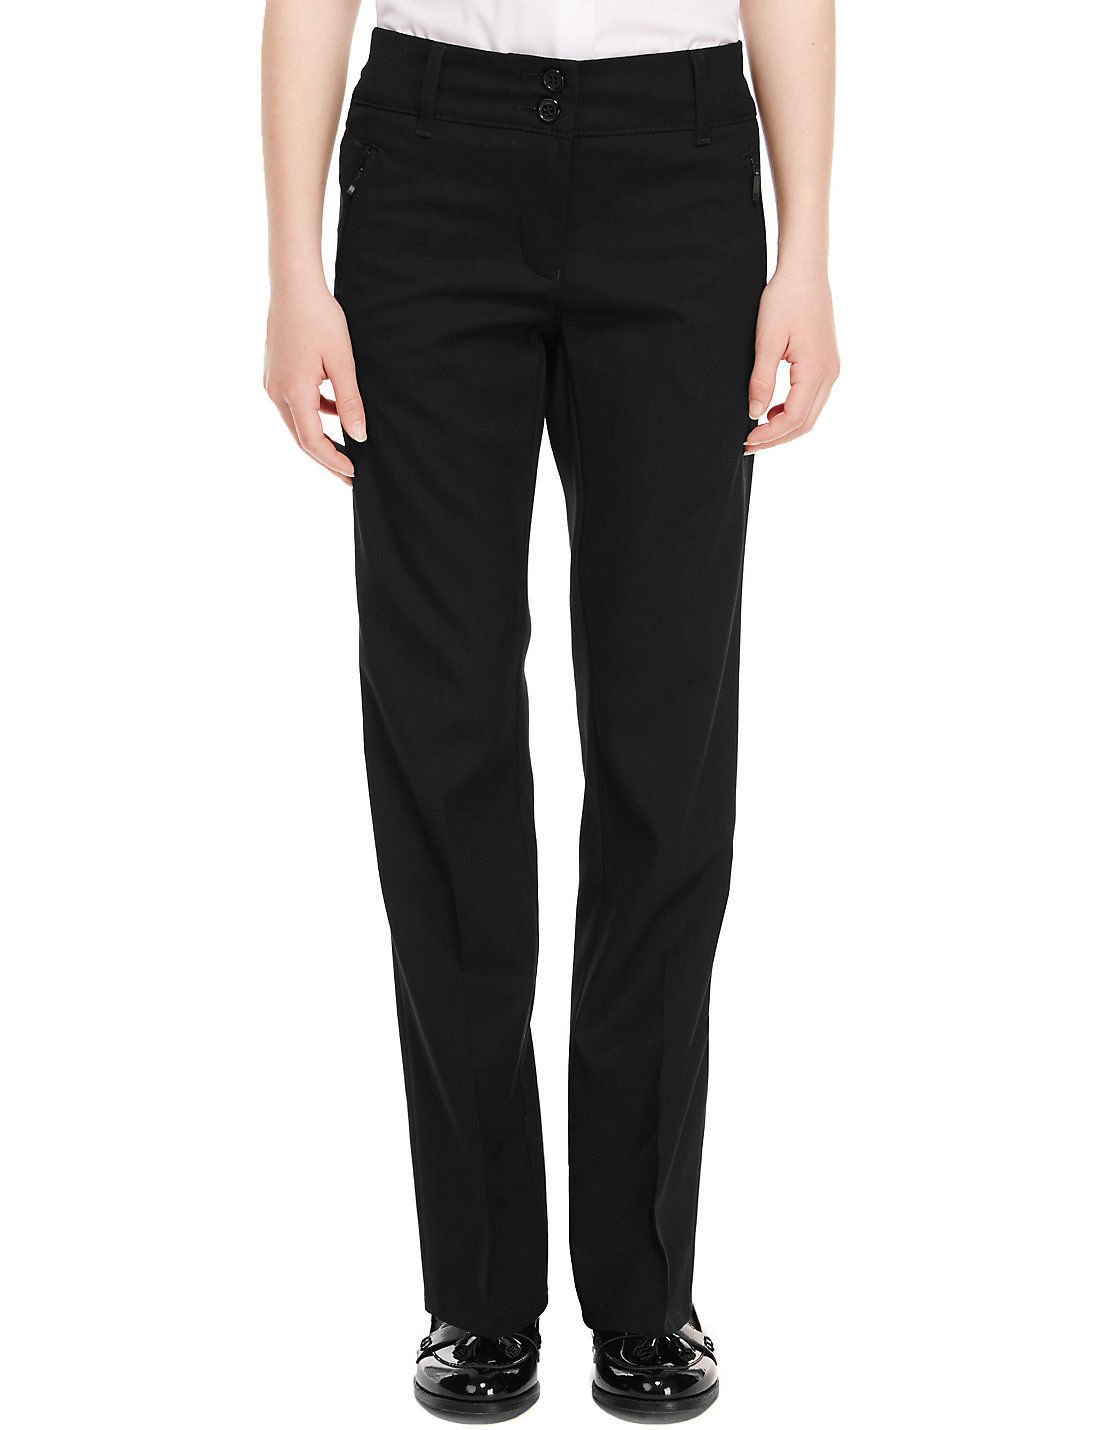 Ex Dunnes Stores Girls Slim Leg School Trouser Ages 3-16 Black Grey Navy + Adujstable Waist - Narrow Leg